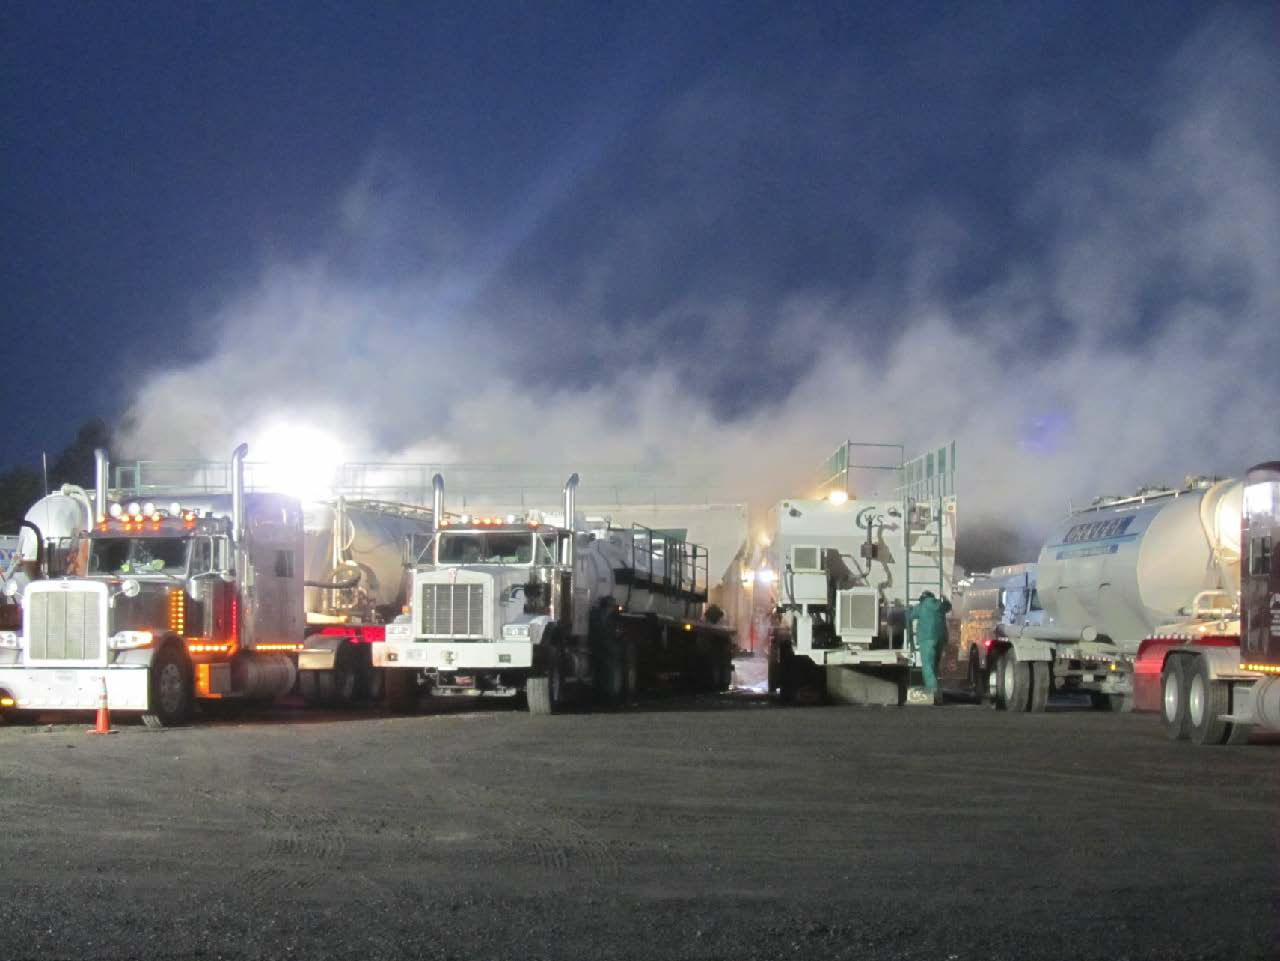 Silica dust clouds from delivery trucks loading into sand movers at a hydraulic fracturing site. Inhalation of this silica is a major hazard associated with oil and gas operations.